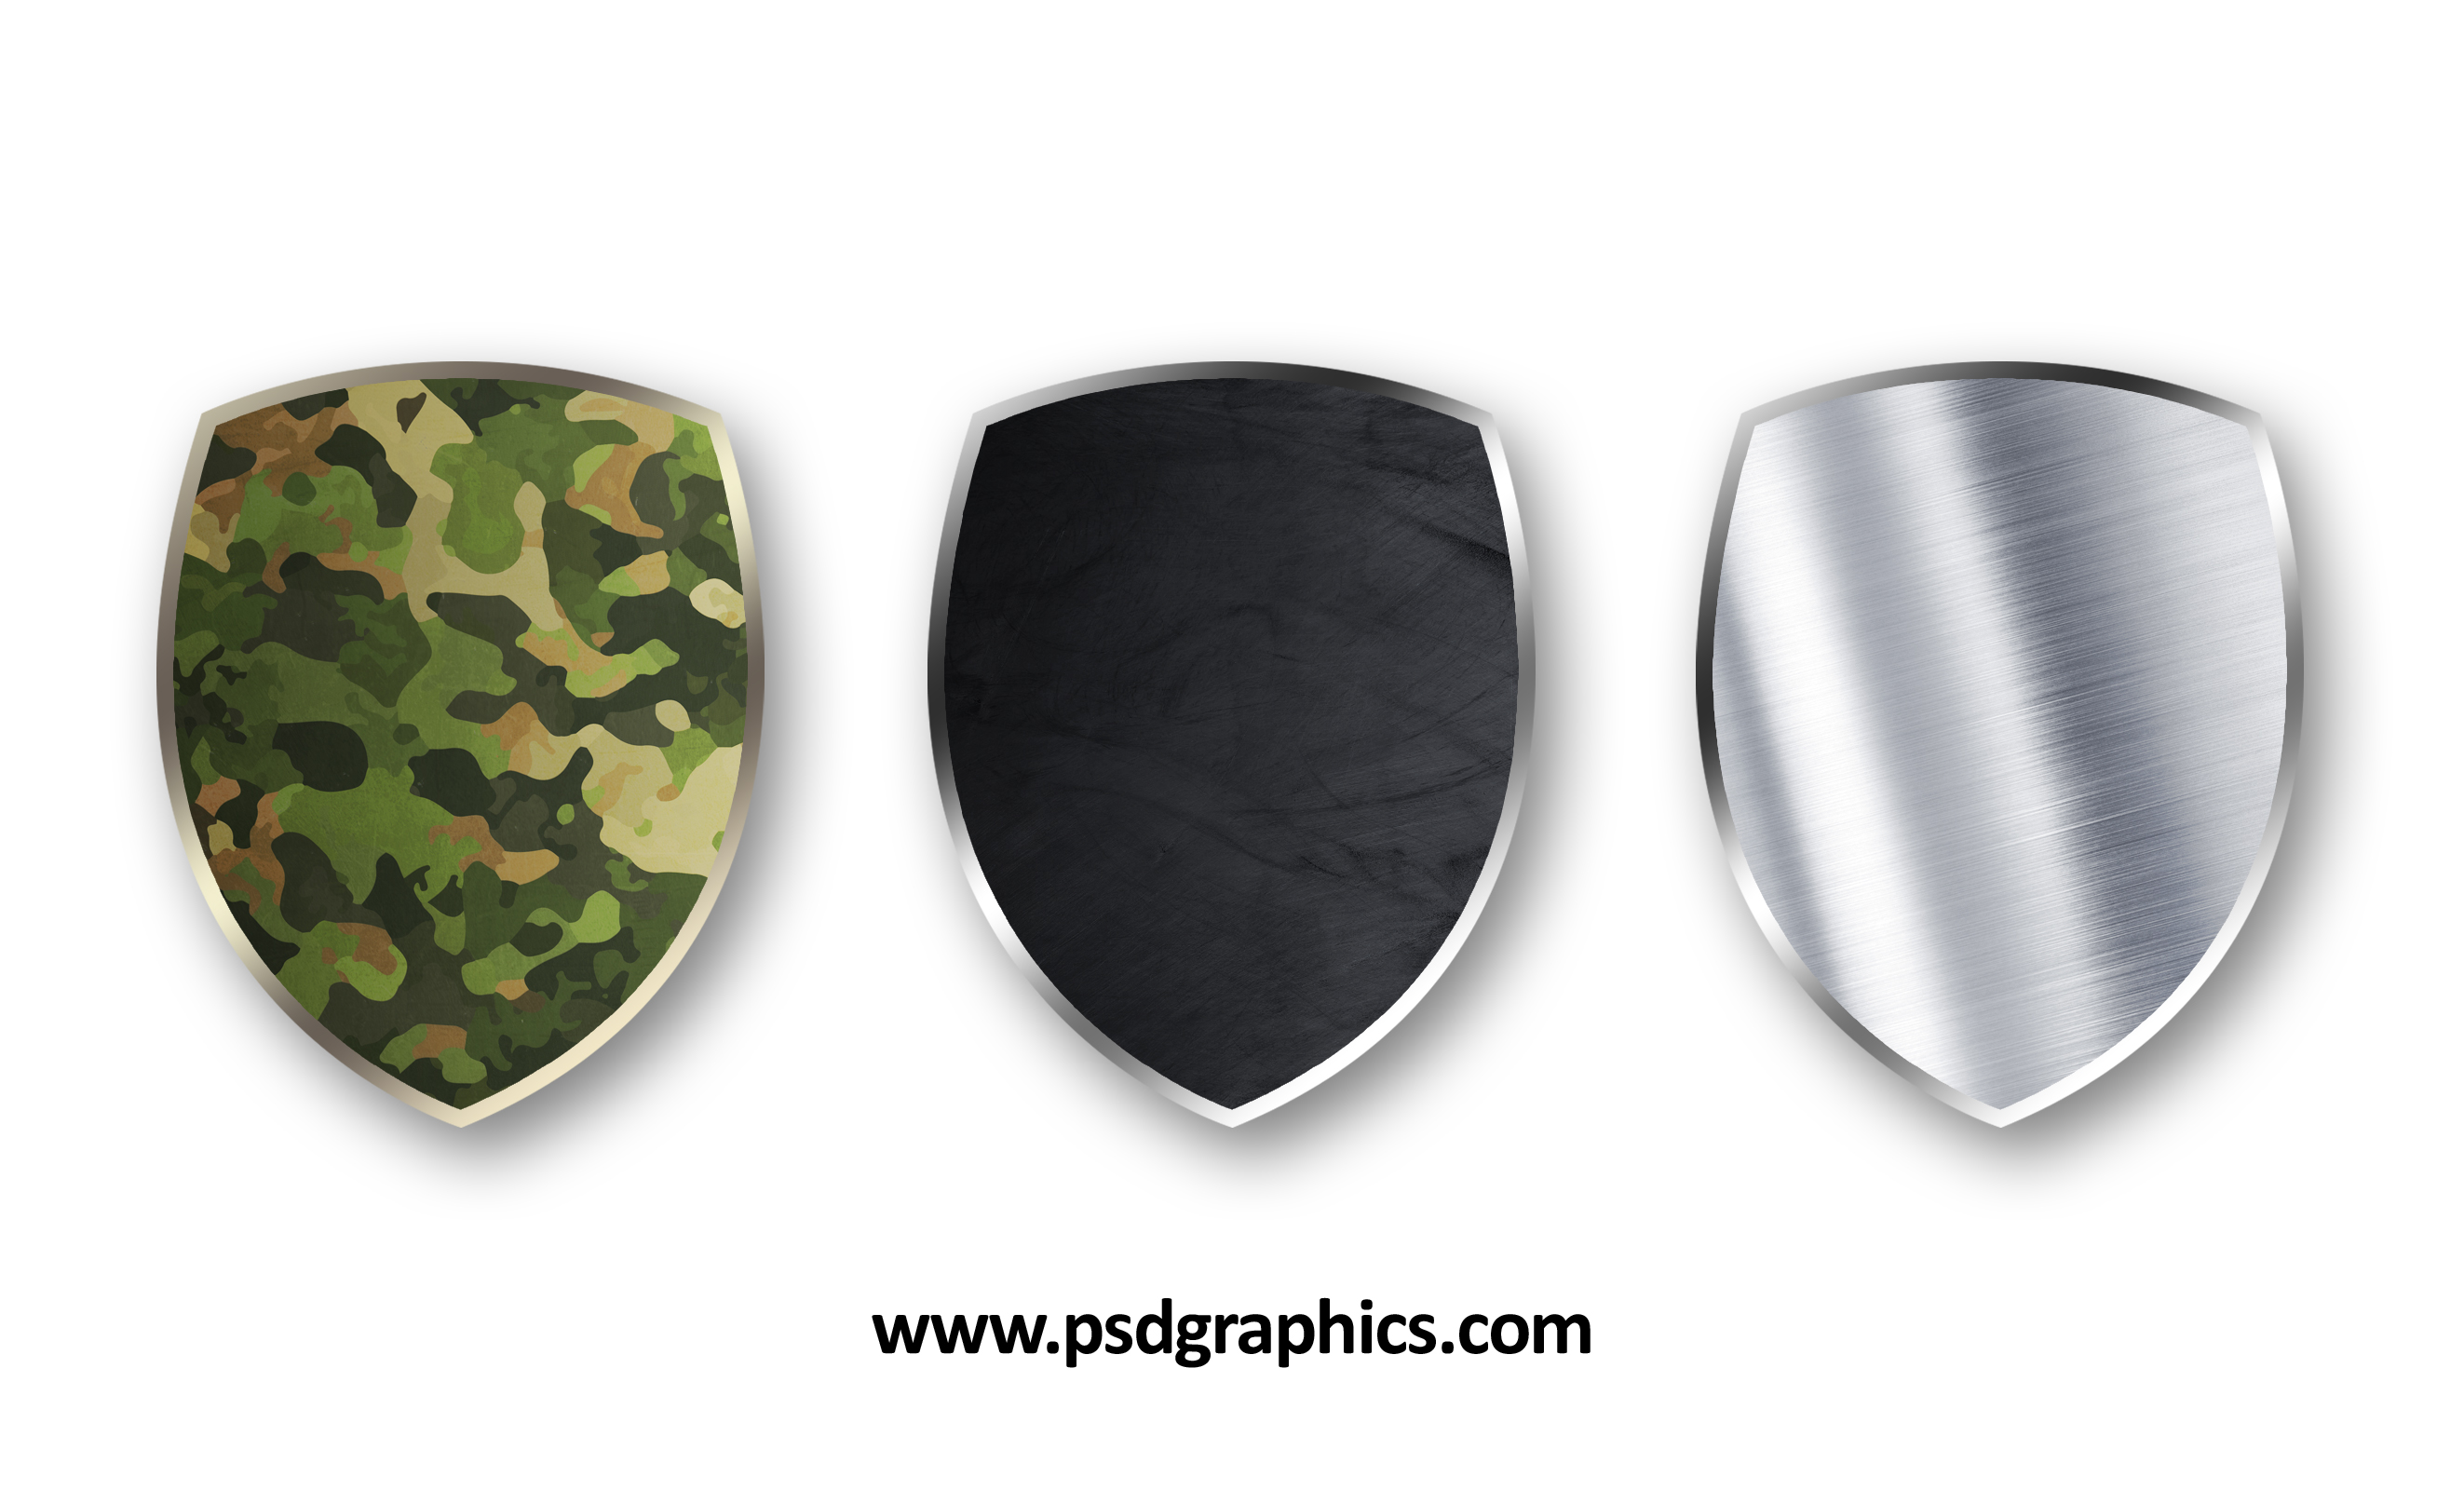 Blank shields psd templates psdgraphics full size jpg preview blank shields templates maxwellsz